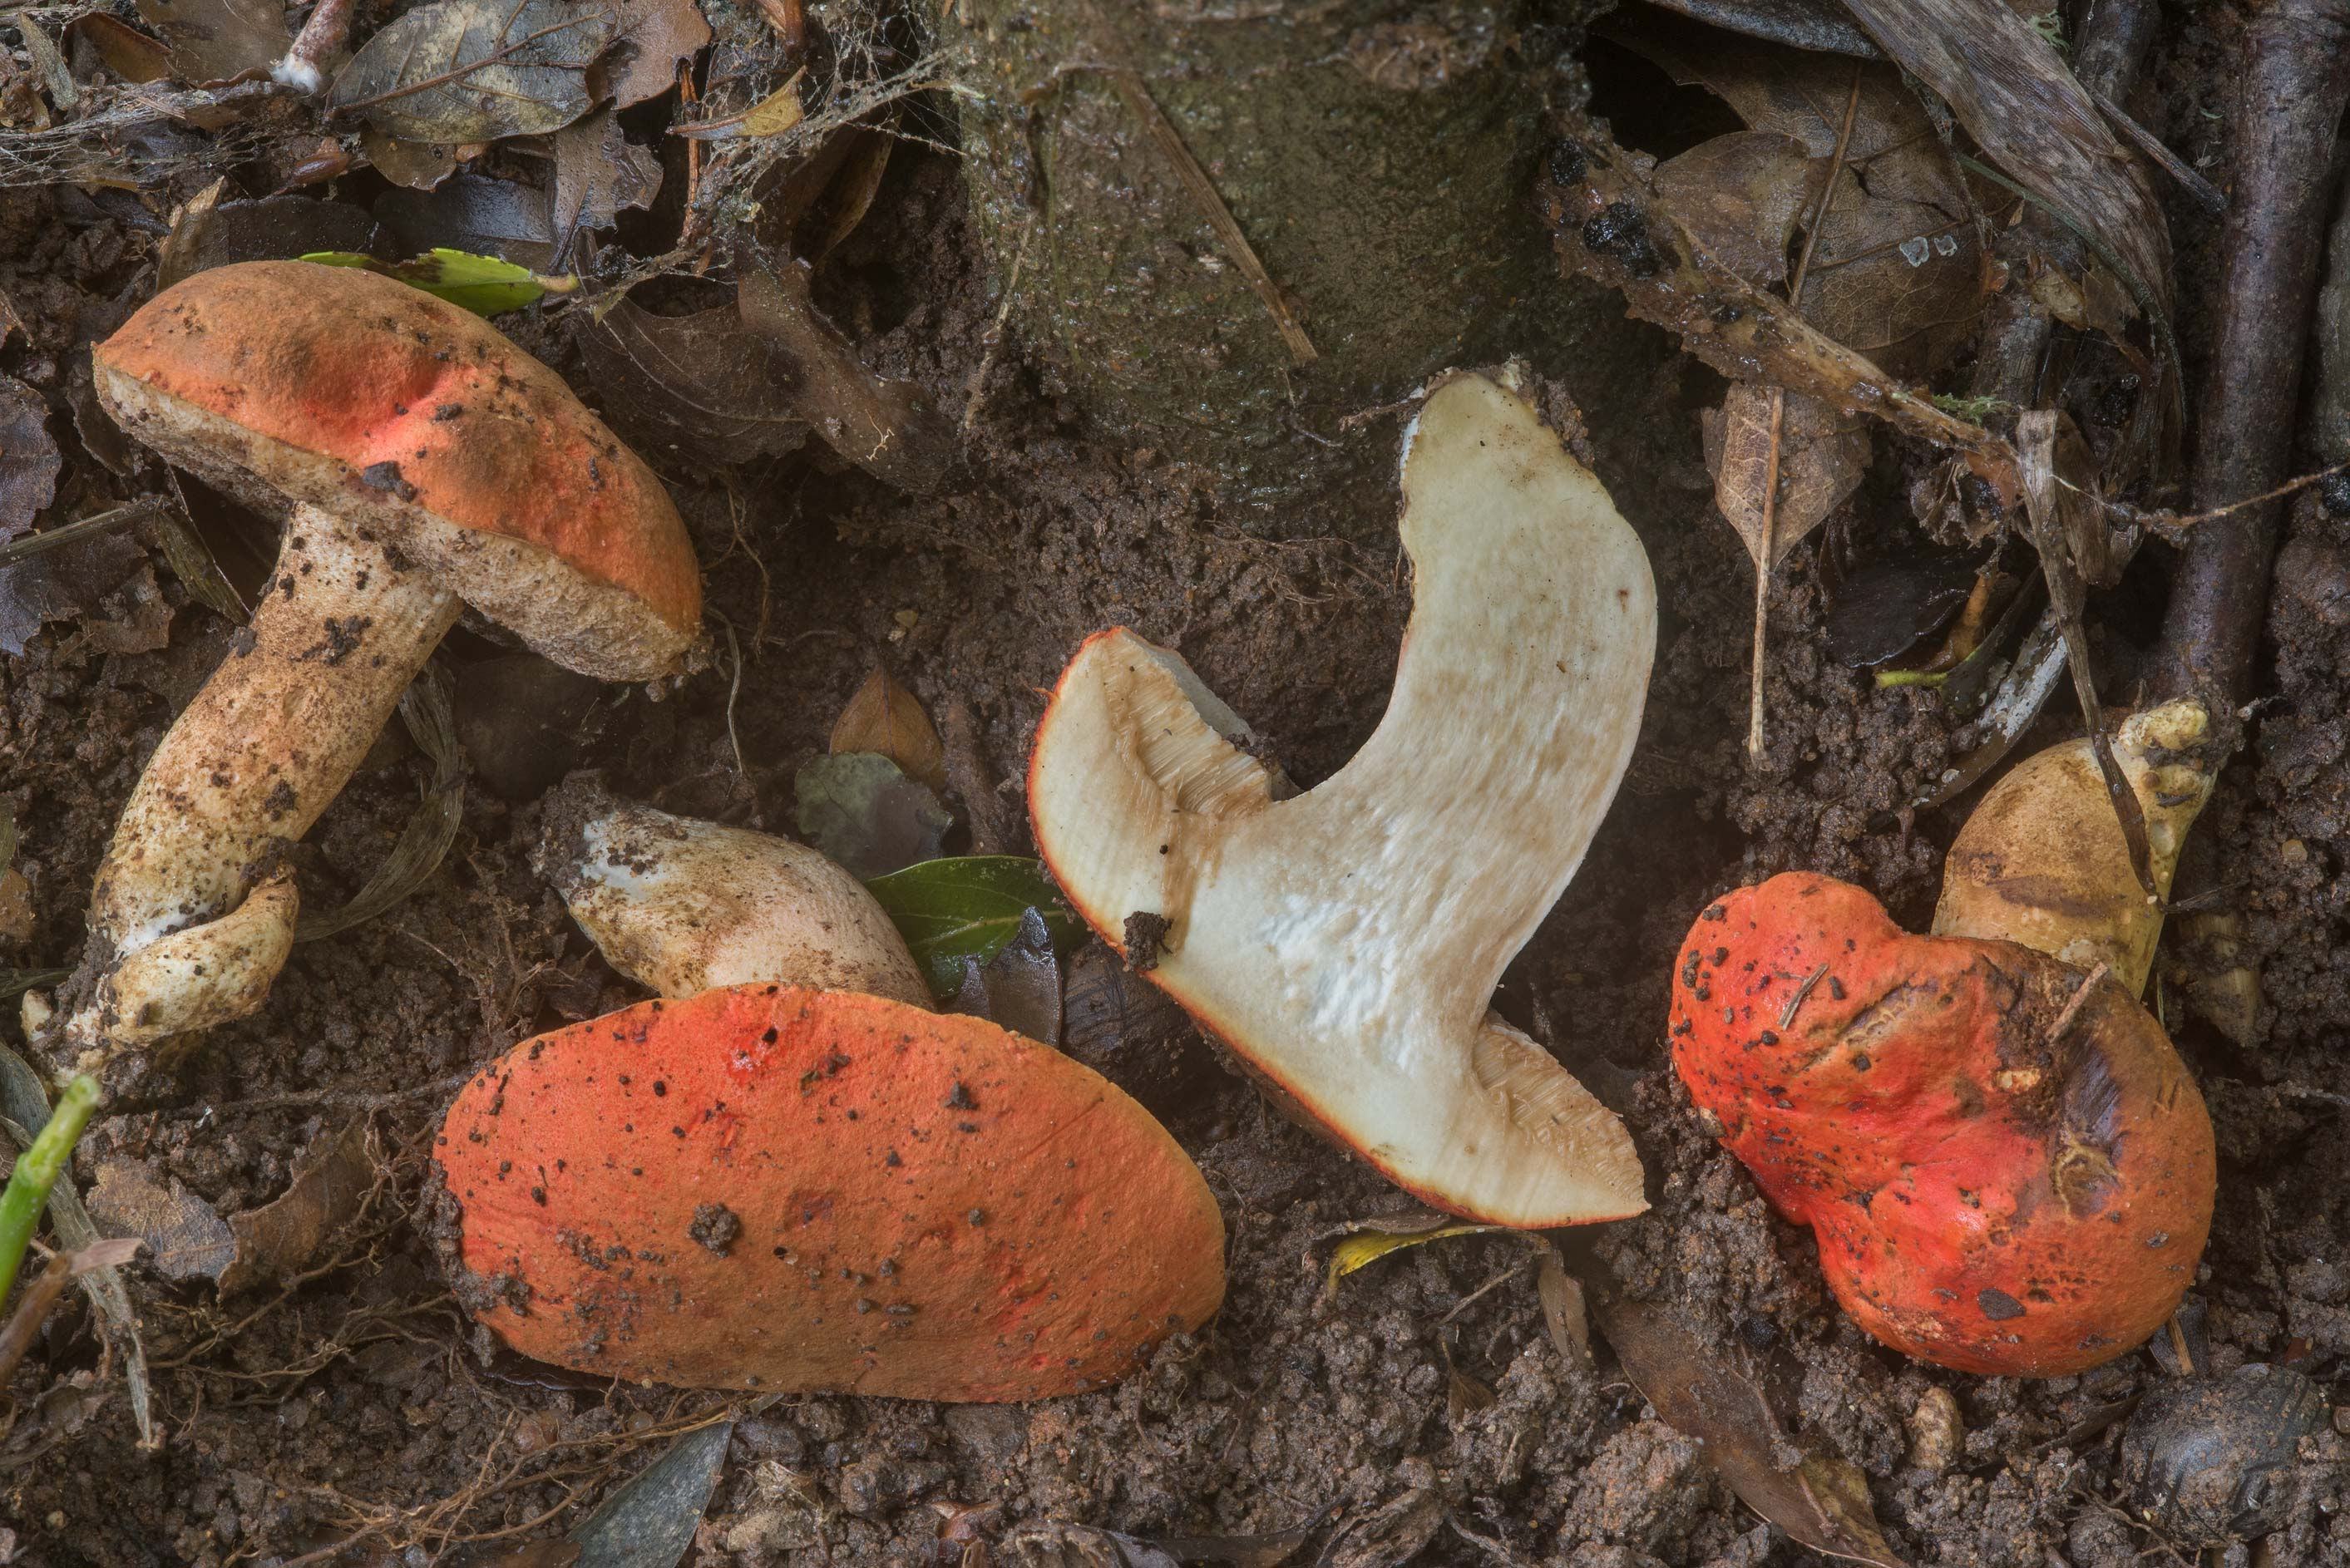 Dissected burnt orange bolete mushrooms...Creek Park. College Station, Texas